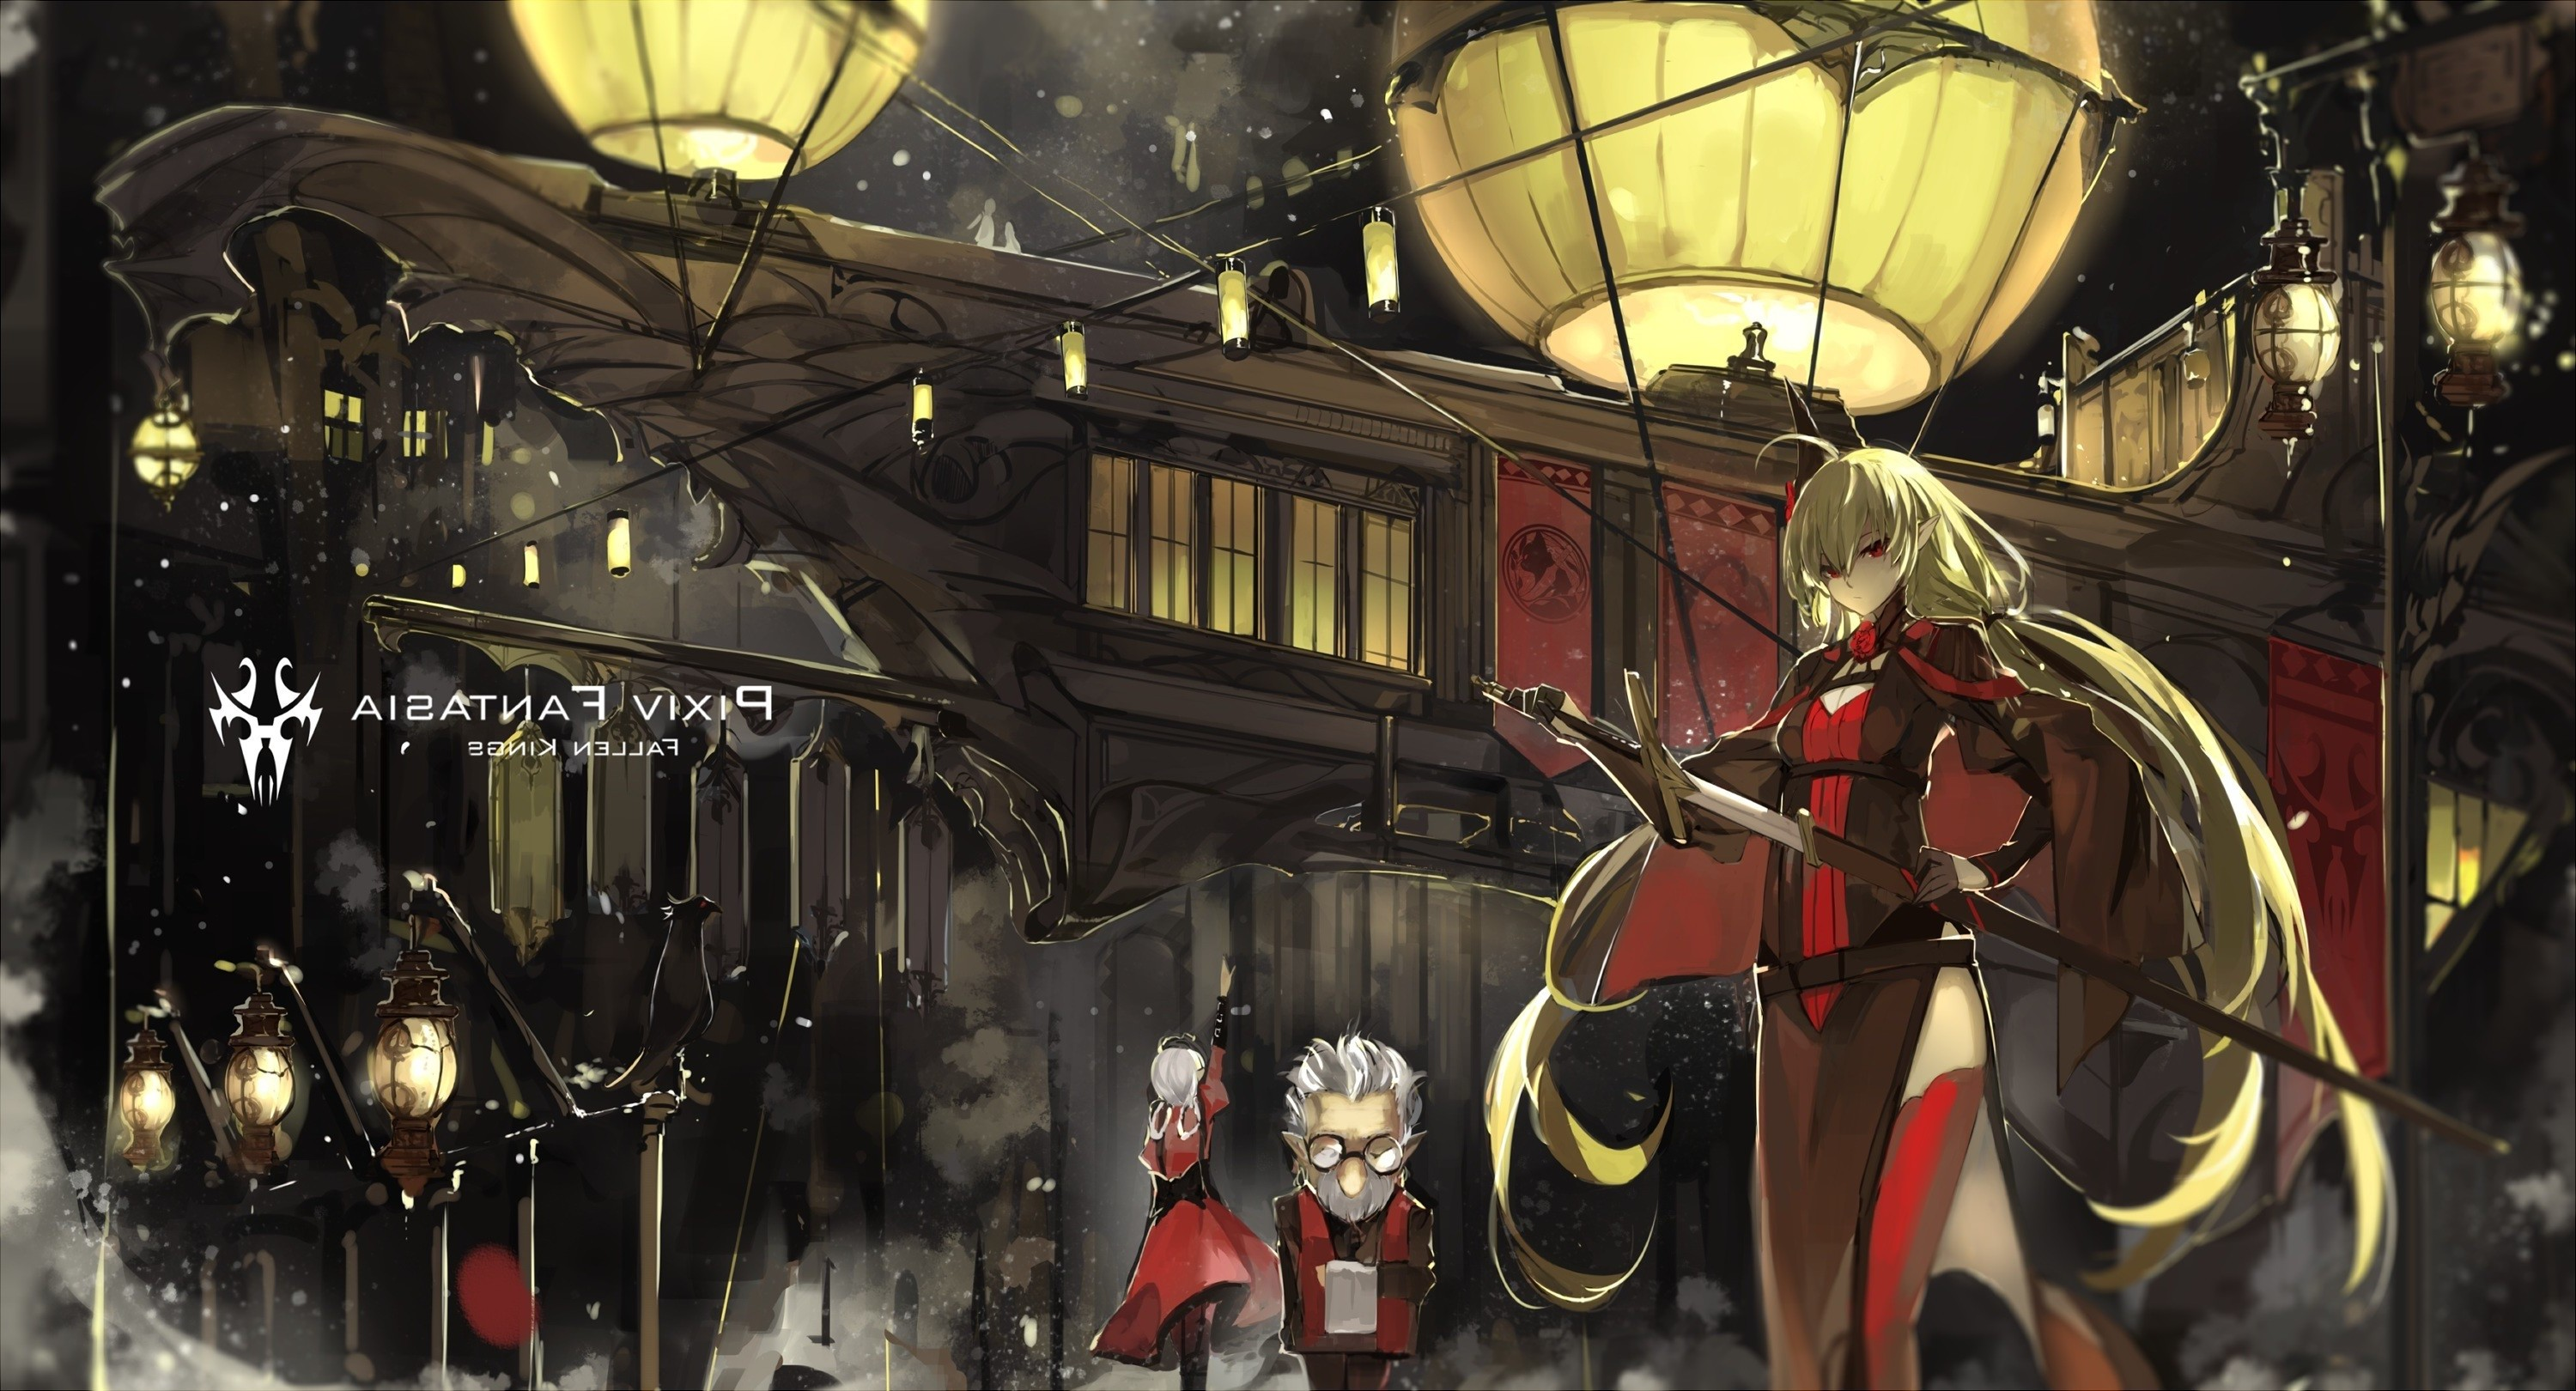 Cute Fairy Wallpapers For Mobile Anime Pixiv Fantasia Fallen Kings Original Characters